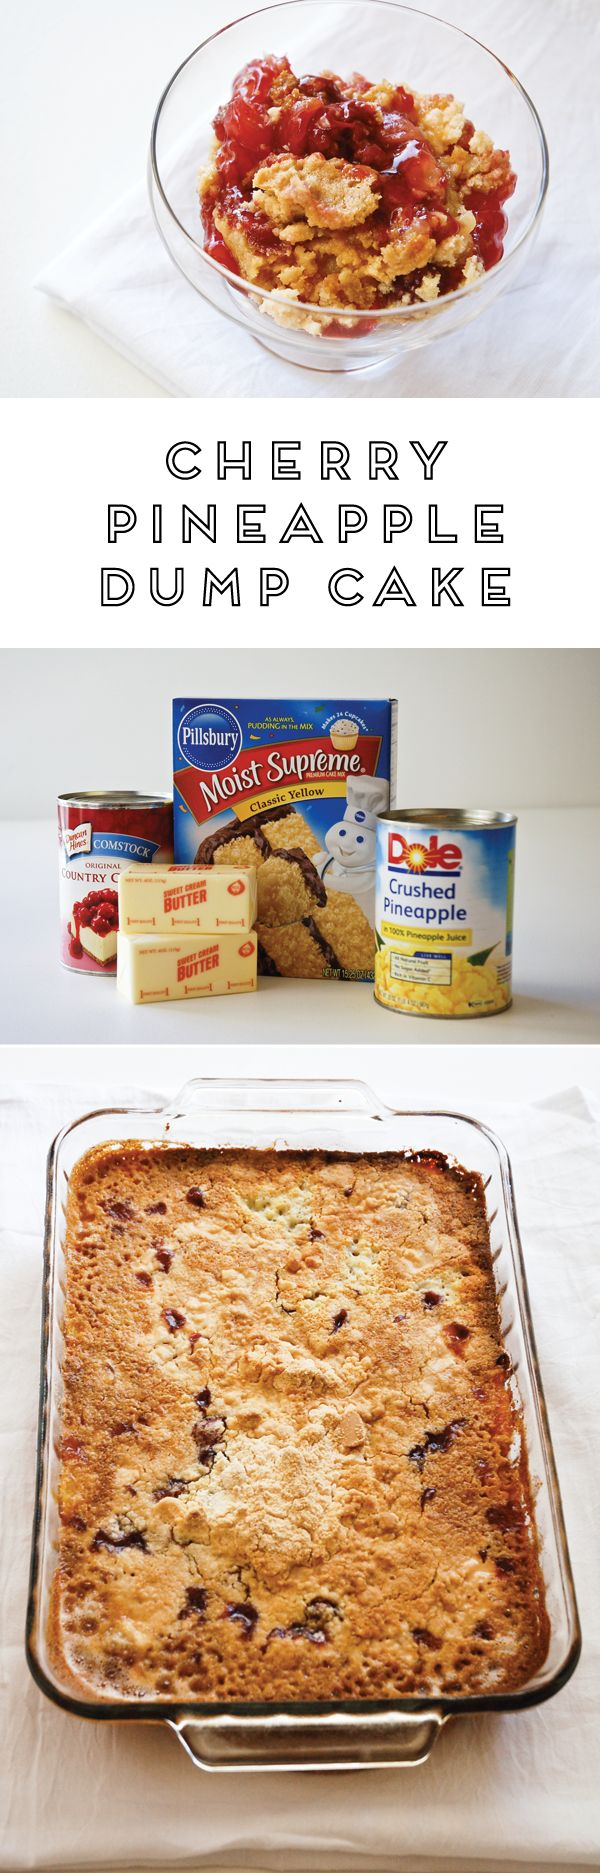 The best dump cake recipe ever! So easy to make and it's super delicious. Always a crowd pleaser!